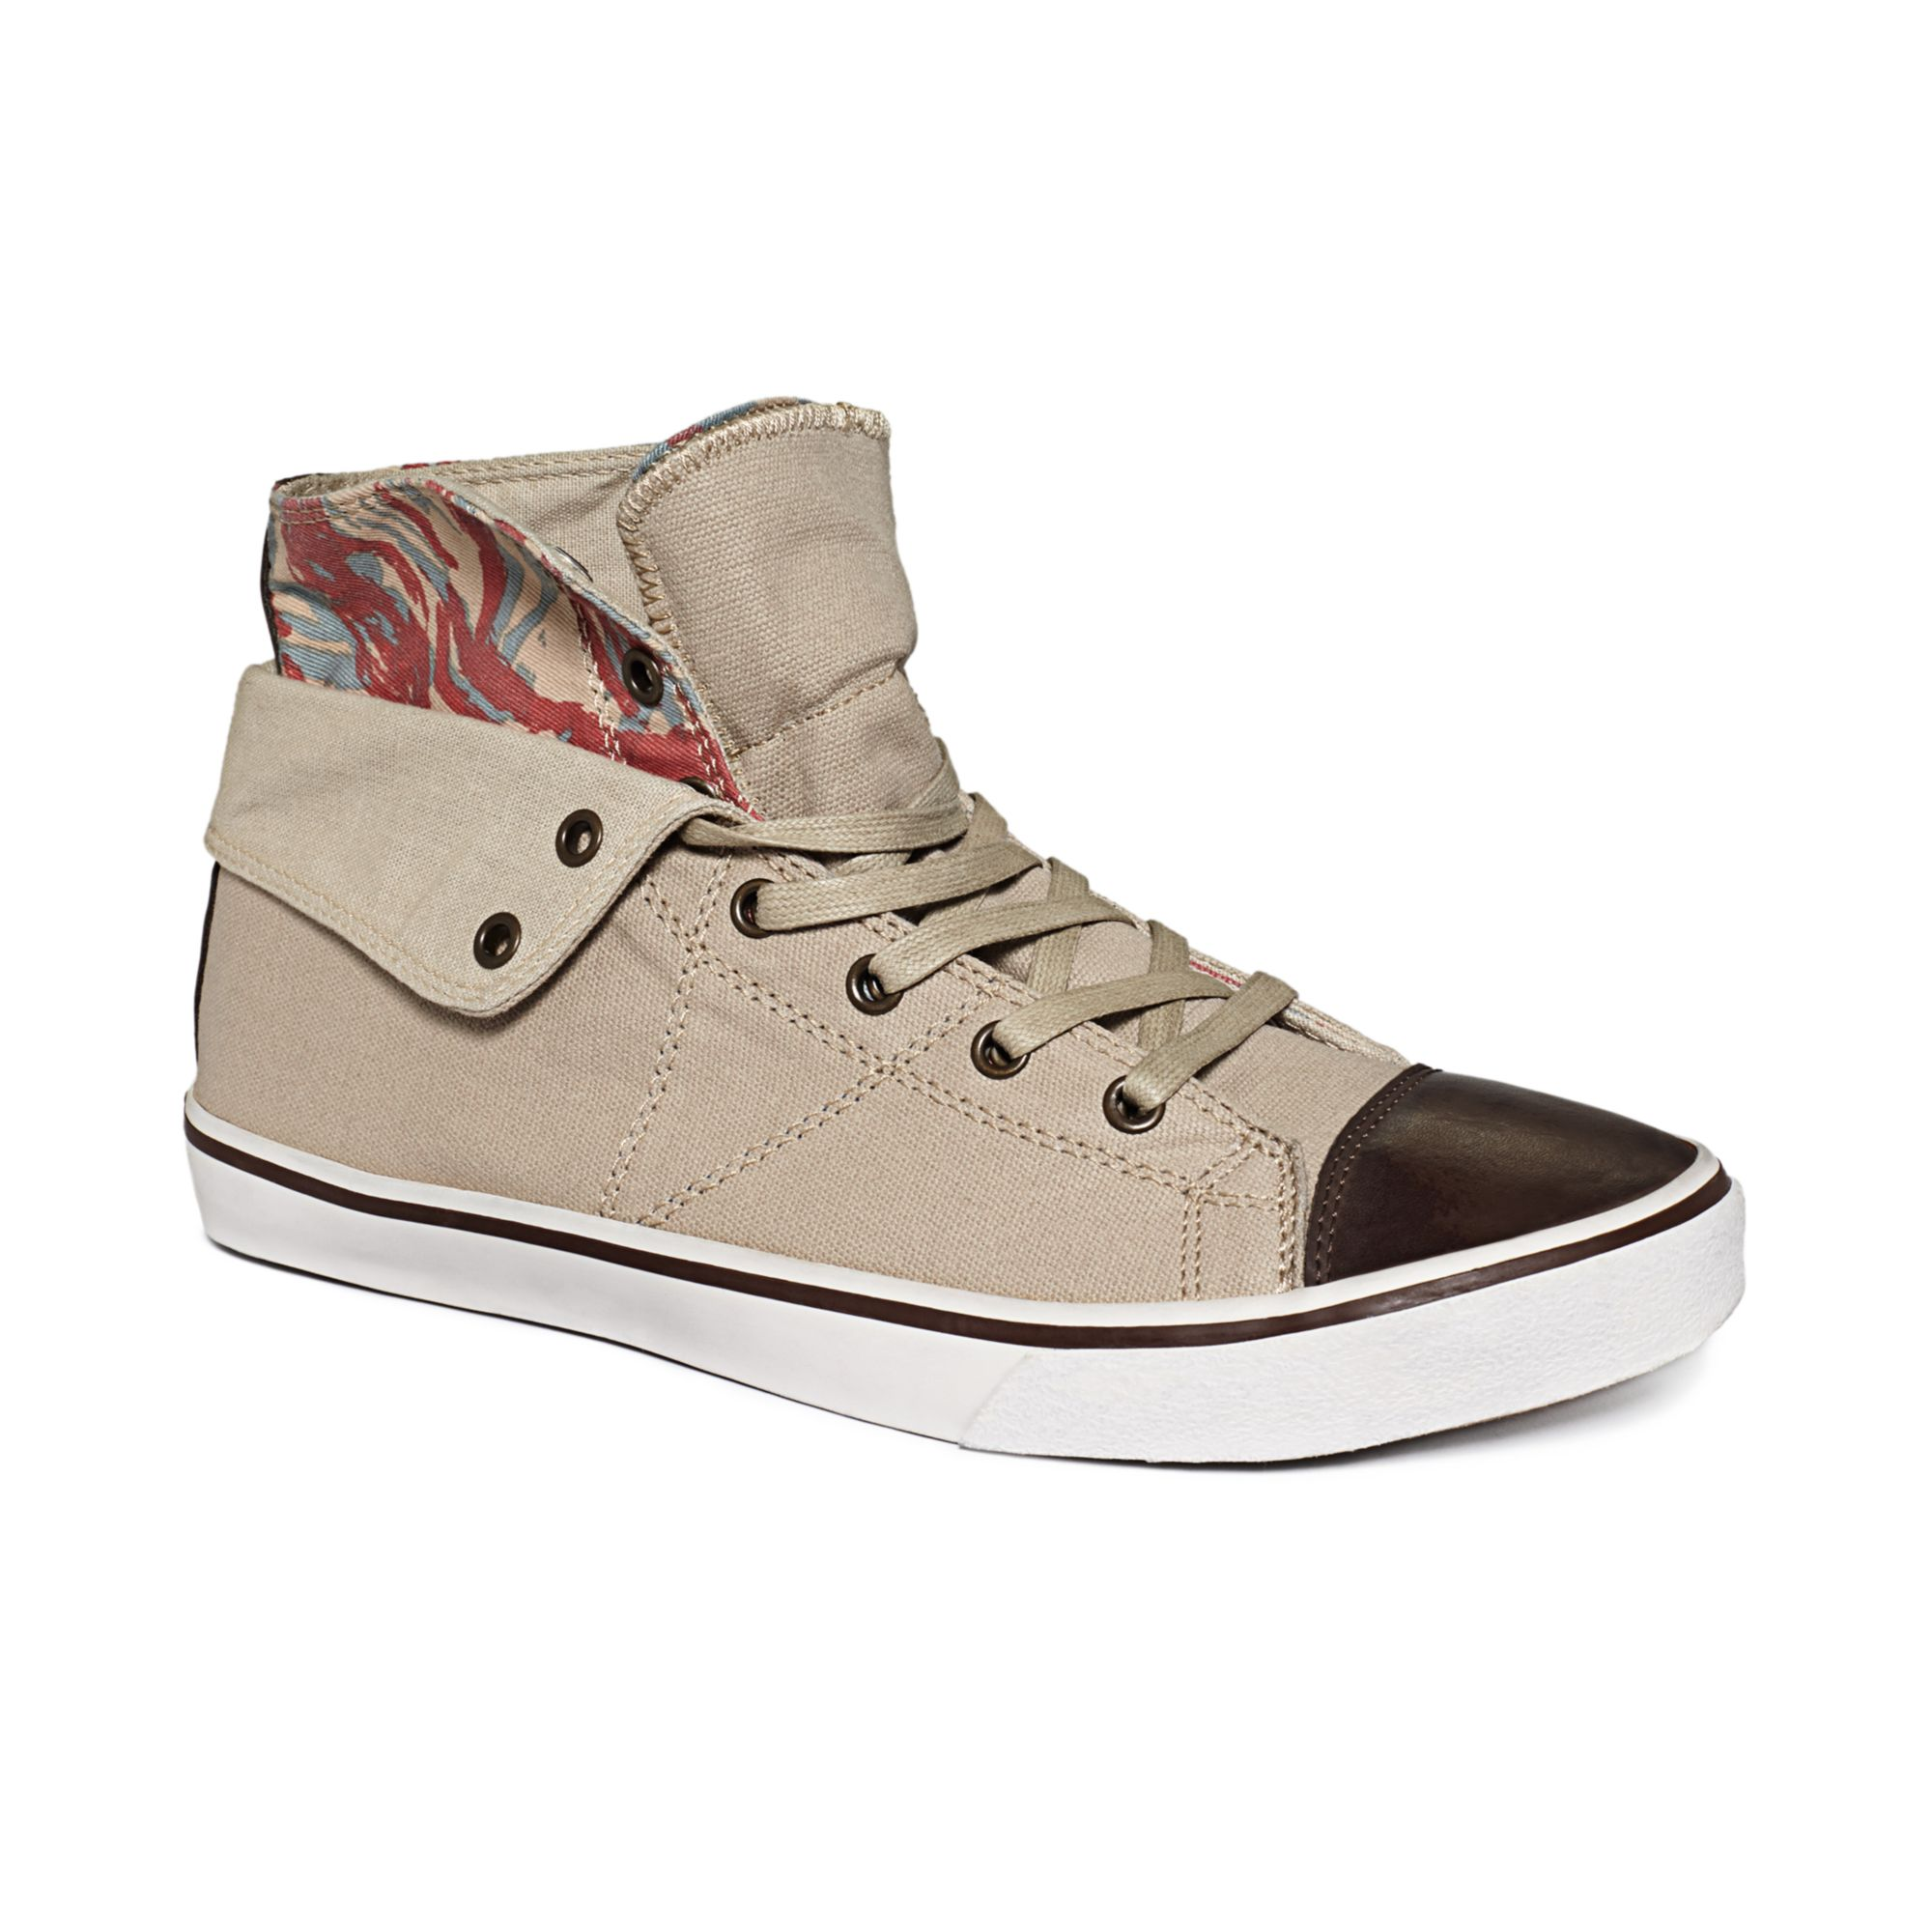 guess mens shoes mat hitop sneakers in beige for sand